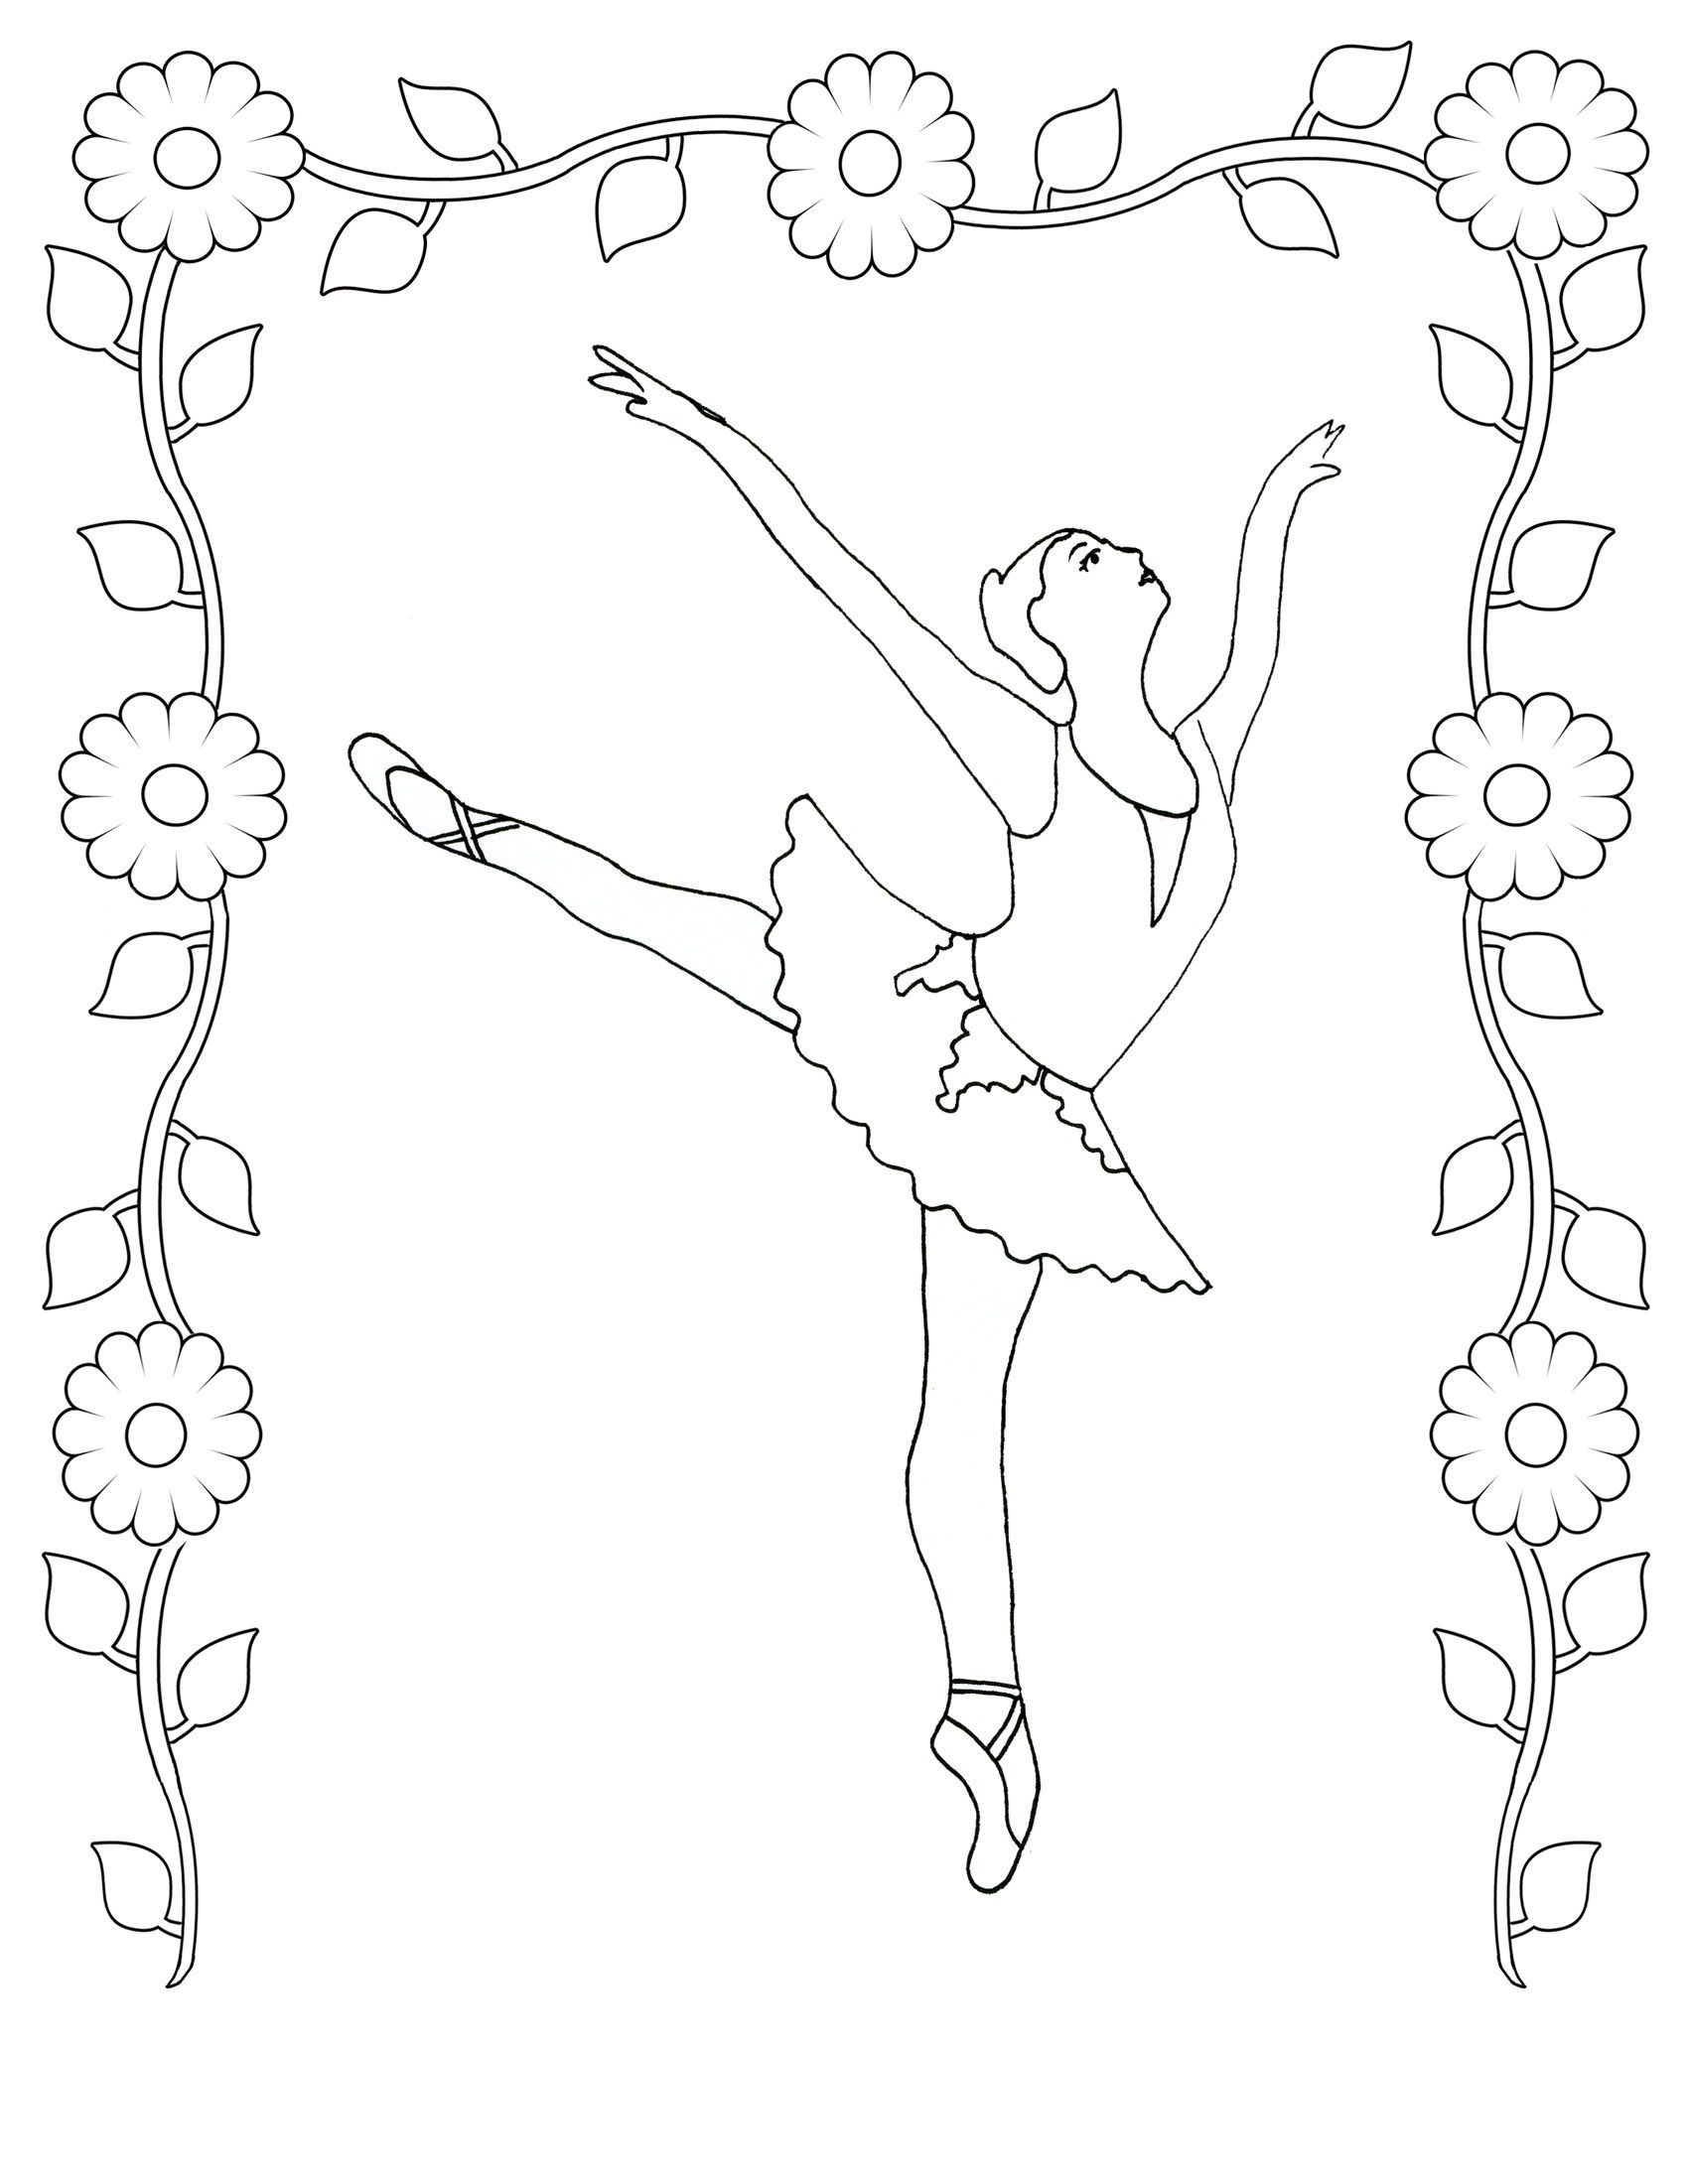 coloring-pages-realistic-ballet-colouring-pages-angelina-ballerina ...